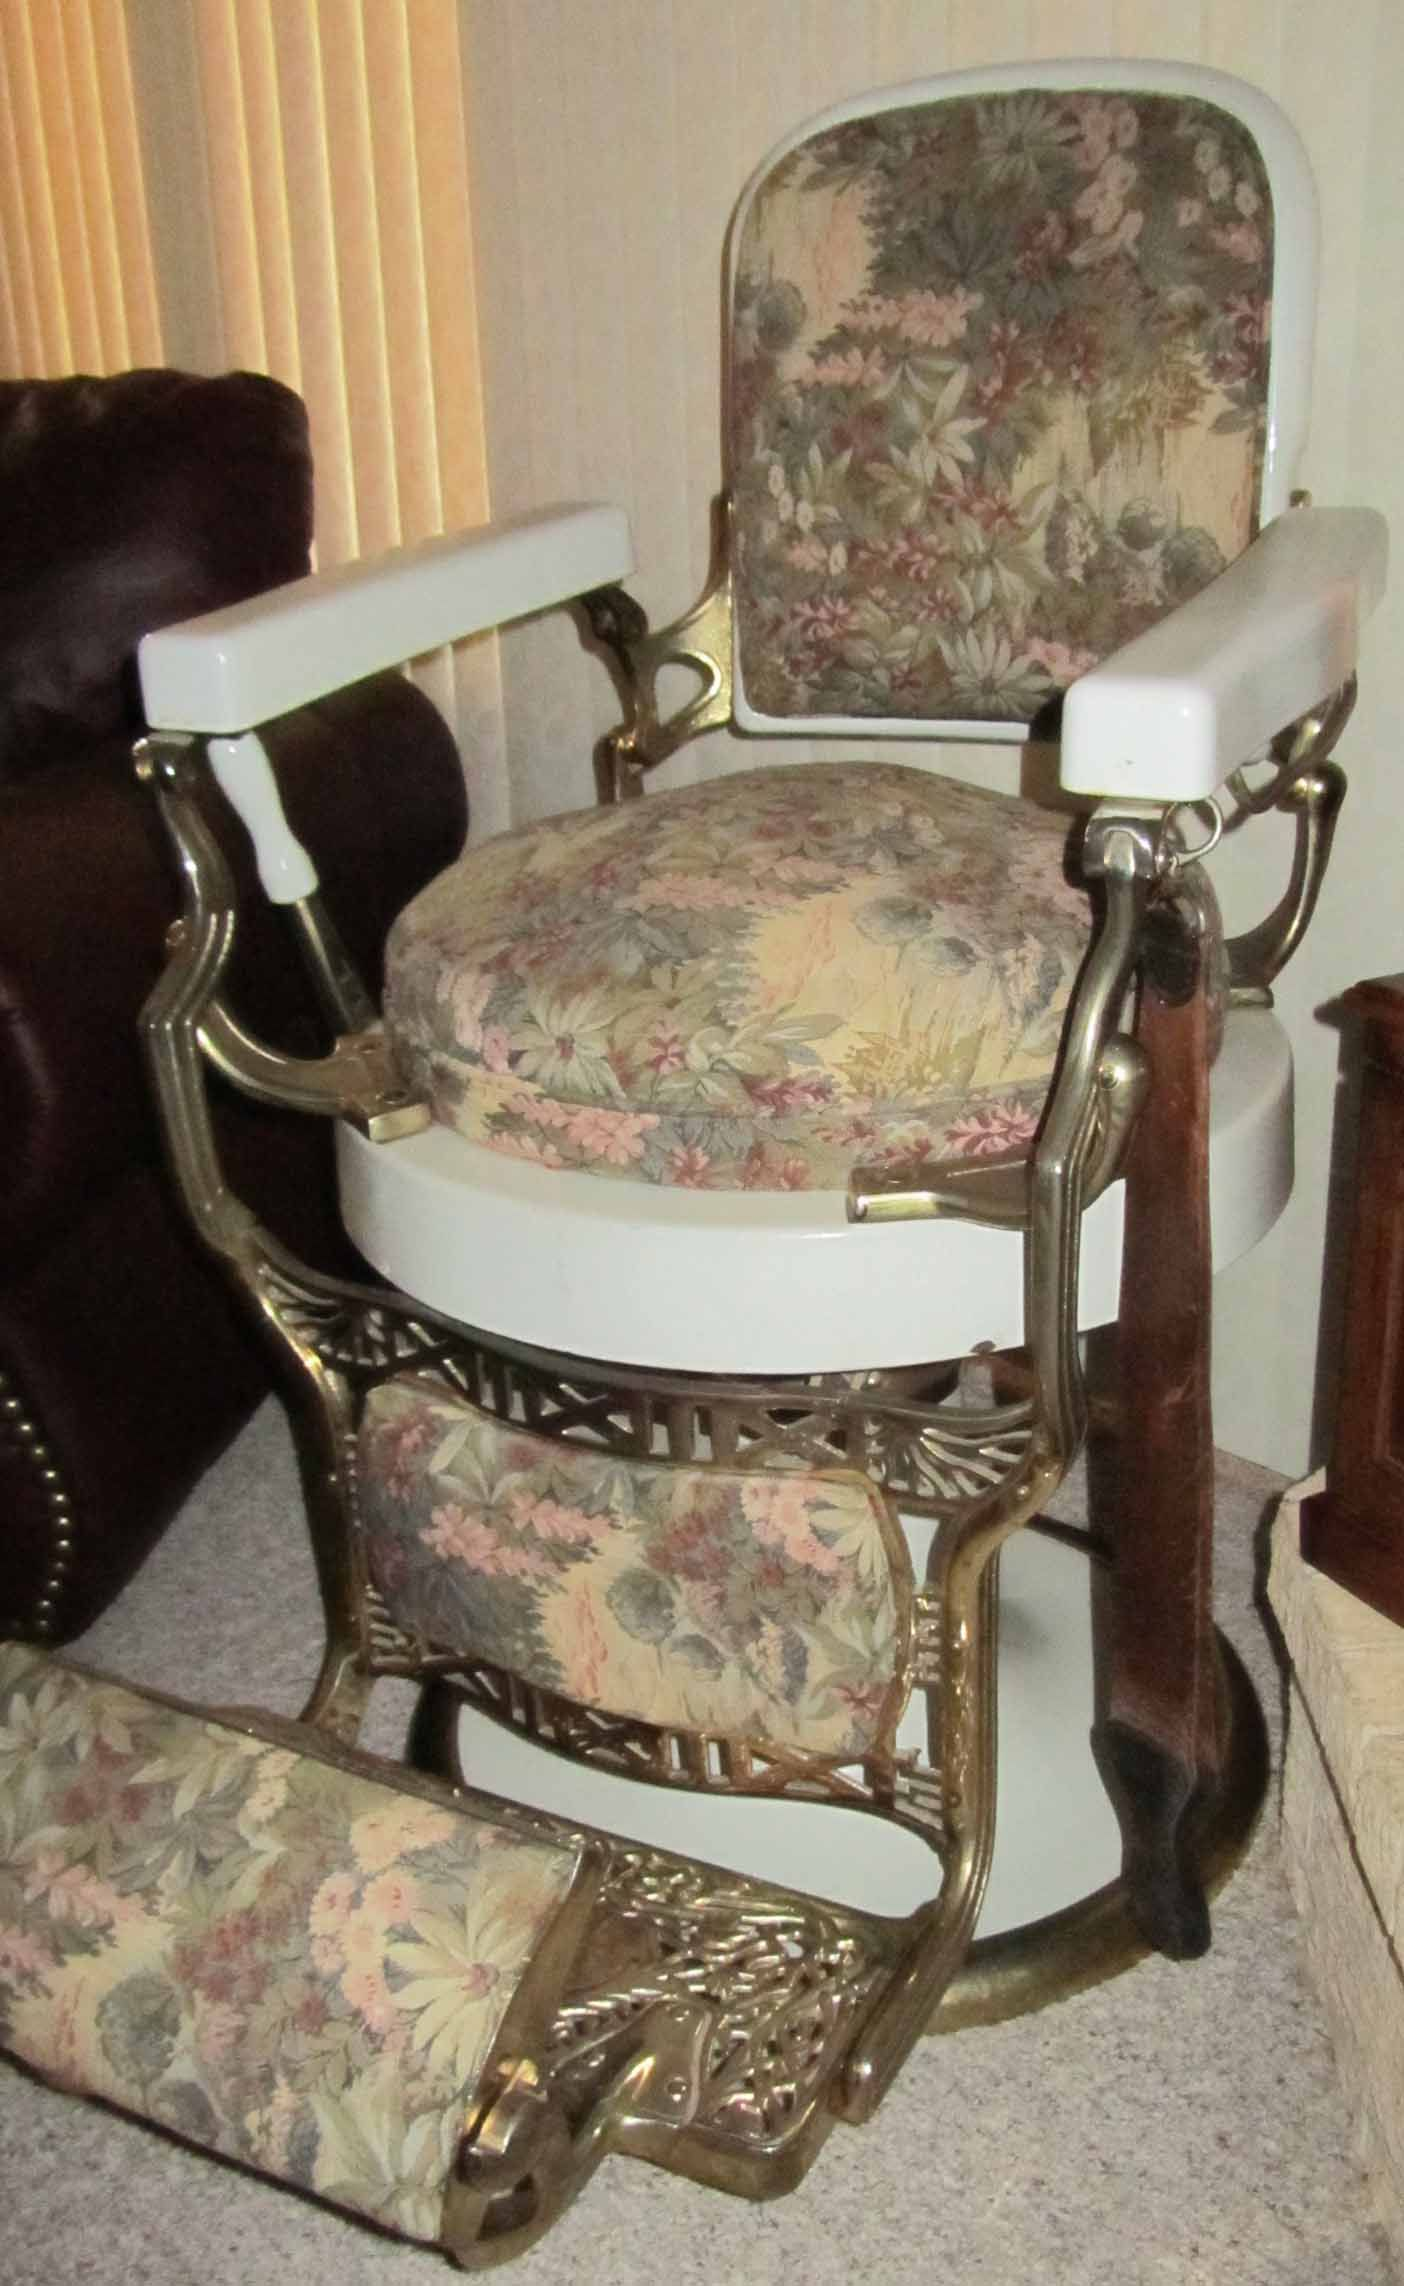 Antique Barber Chairs Marketplace – Buy and sell antique barber . - Antique Barber Chairs Marketplace – Buy And Sell Antique Barber